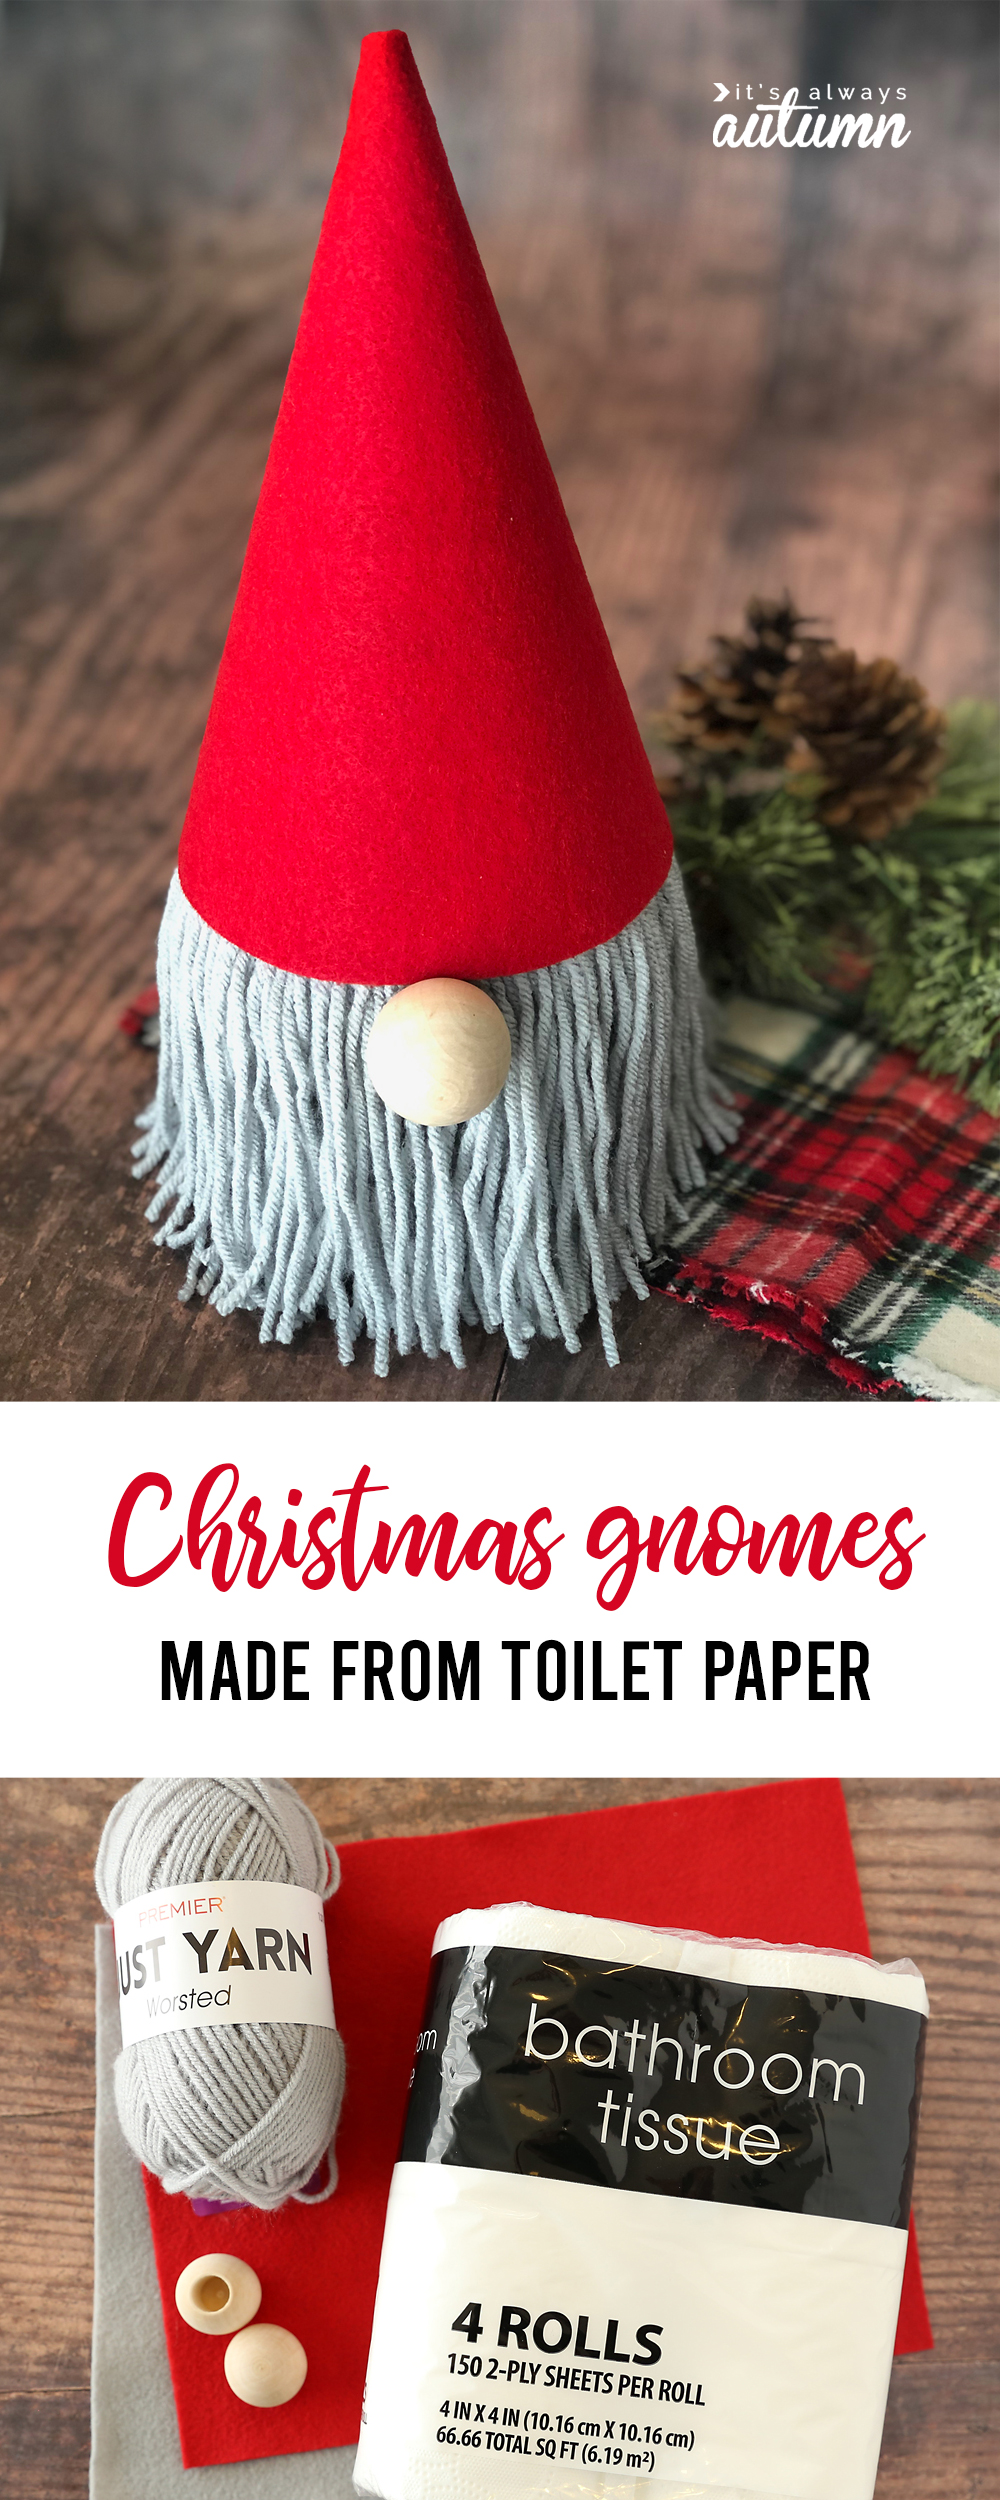 Christmas gnome made from toilet paper roll with yarn beard and red felt hat